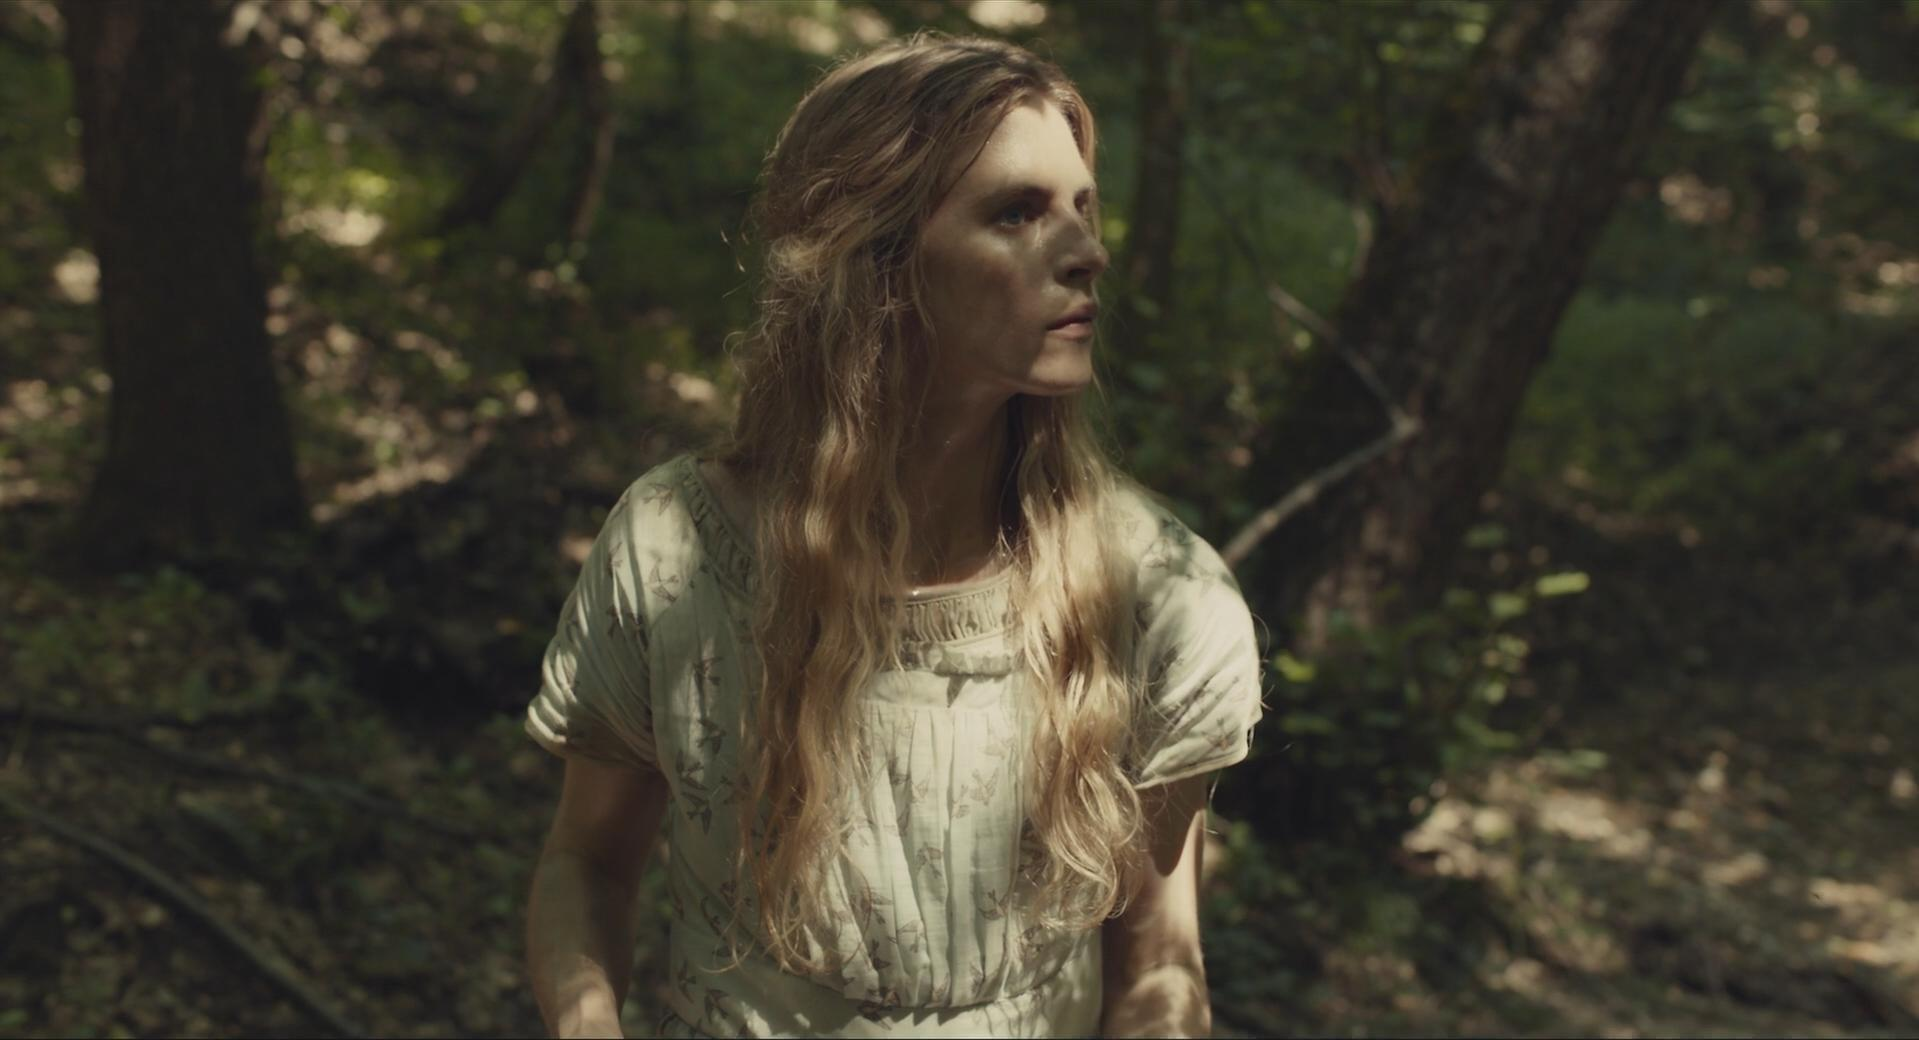 Brit Marling in The Keeping Room (2014)